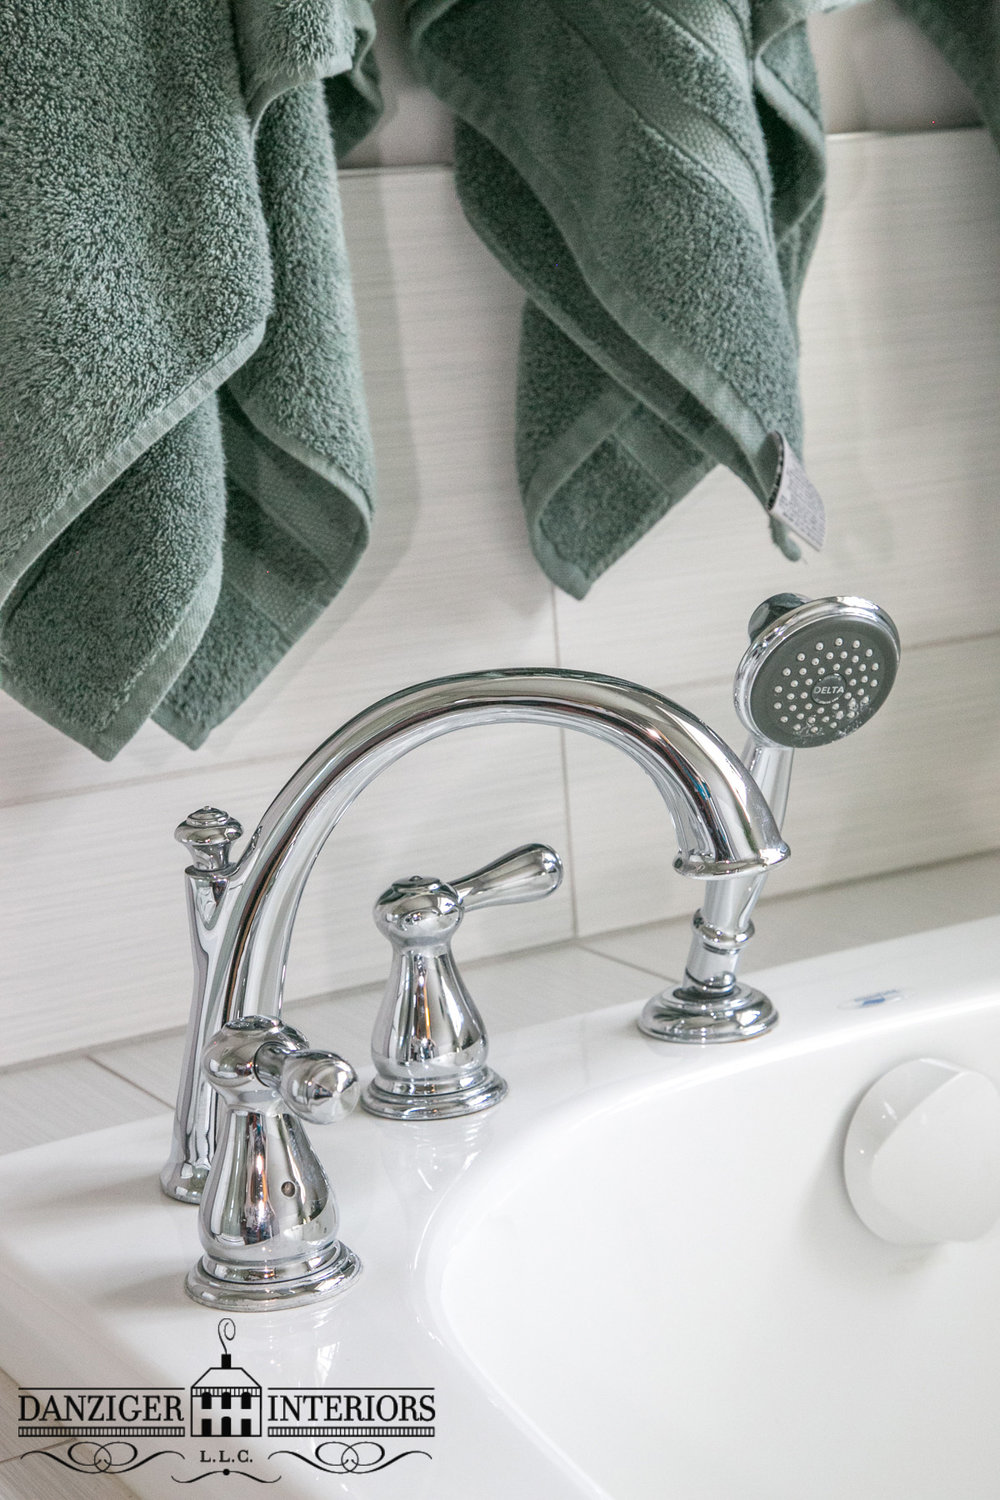 Polished Chrome Faucets and Hand-Held Shower Head